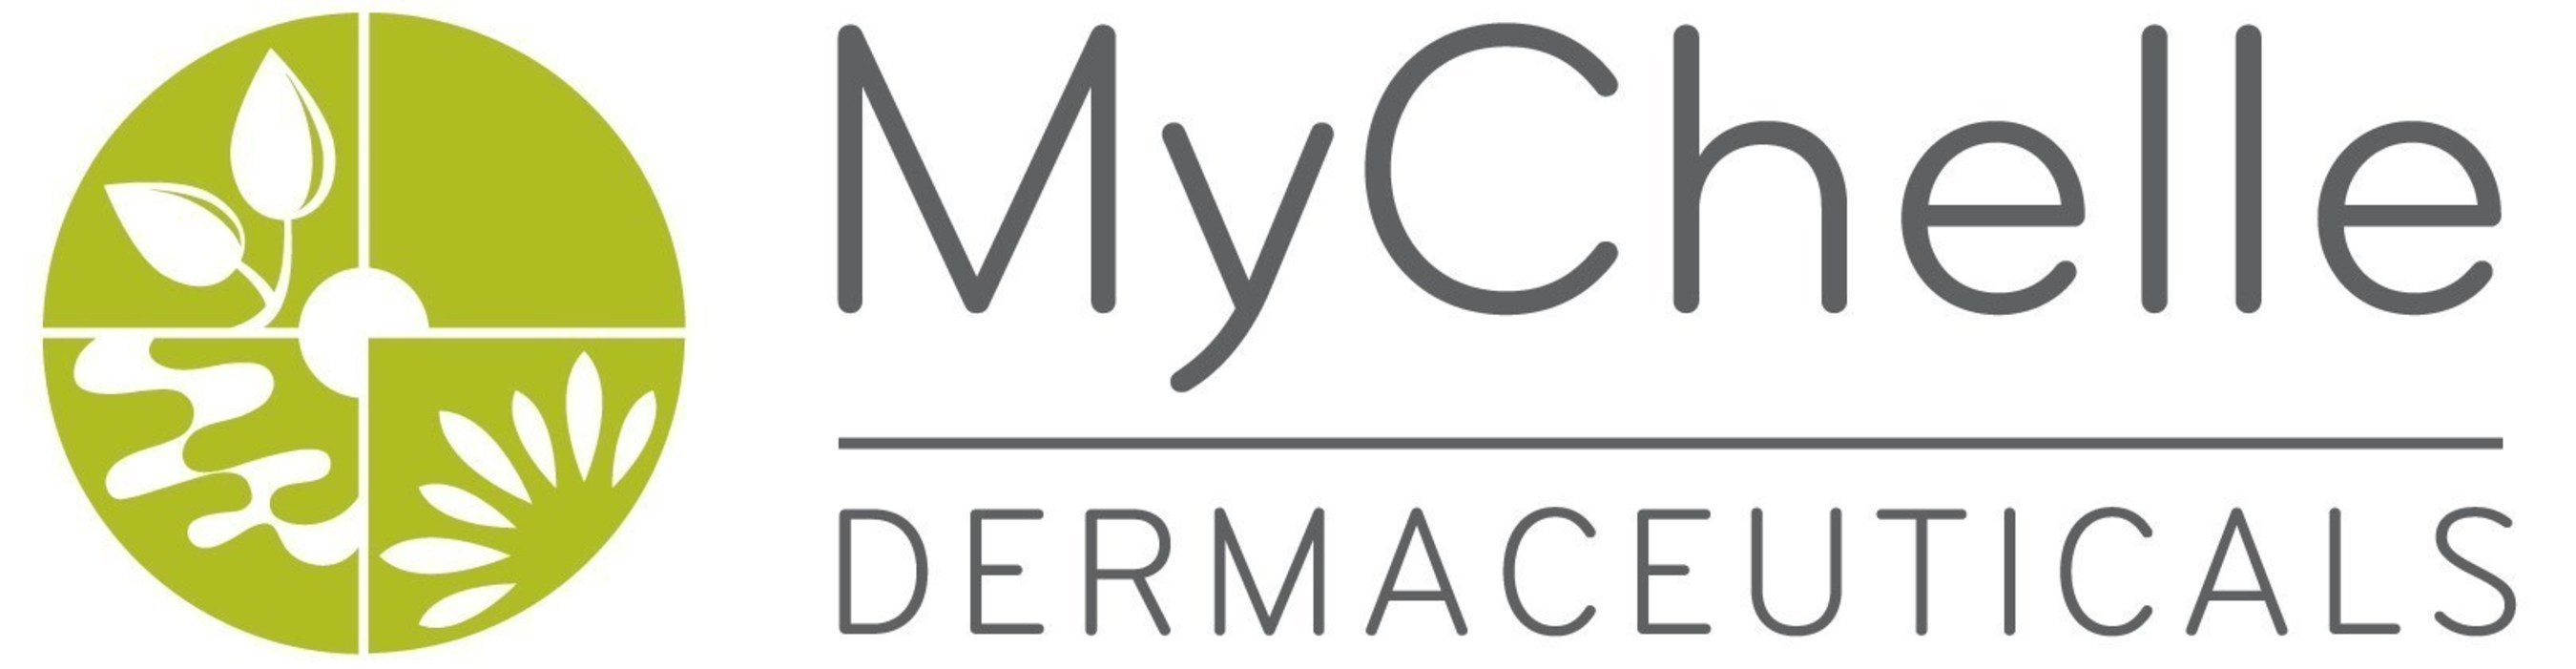 This spring, MyChelle Dermaceuticals is partnering with the Environmental Working Group (EWG) to promote its ...